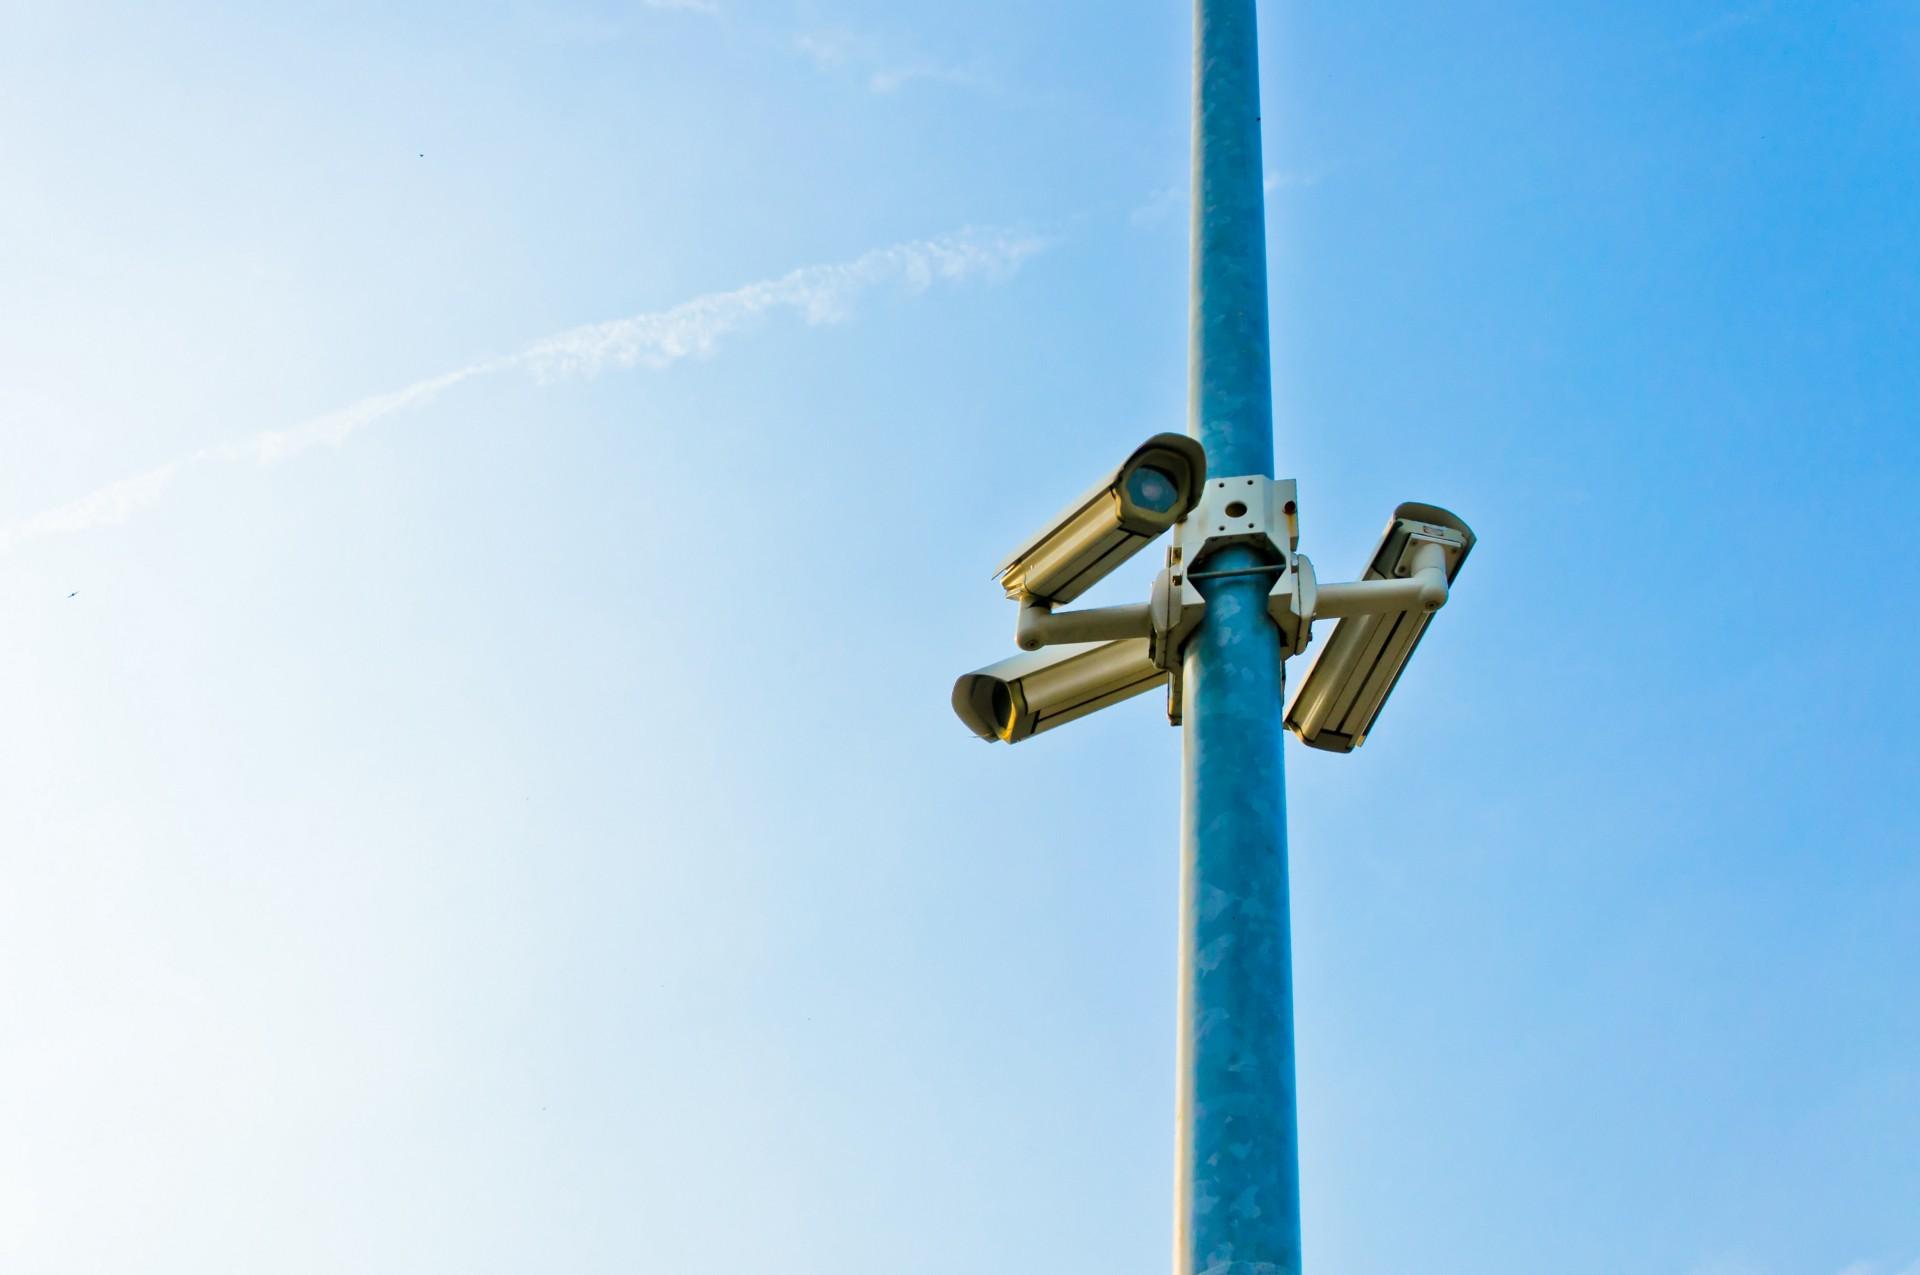 personal_info_stealing_cctv_the_technews